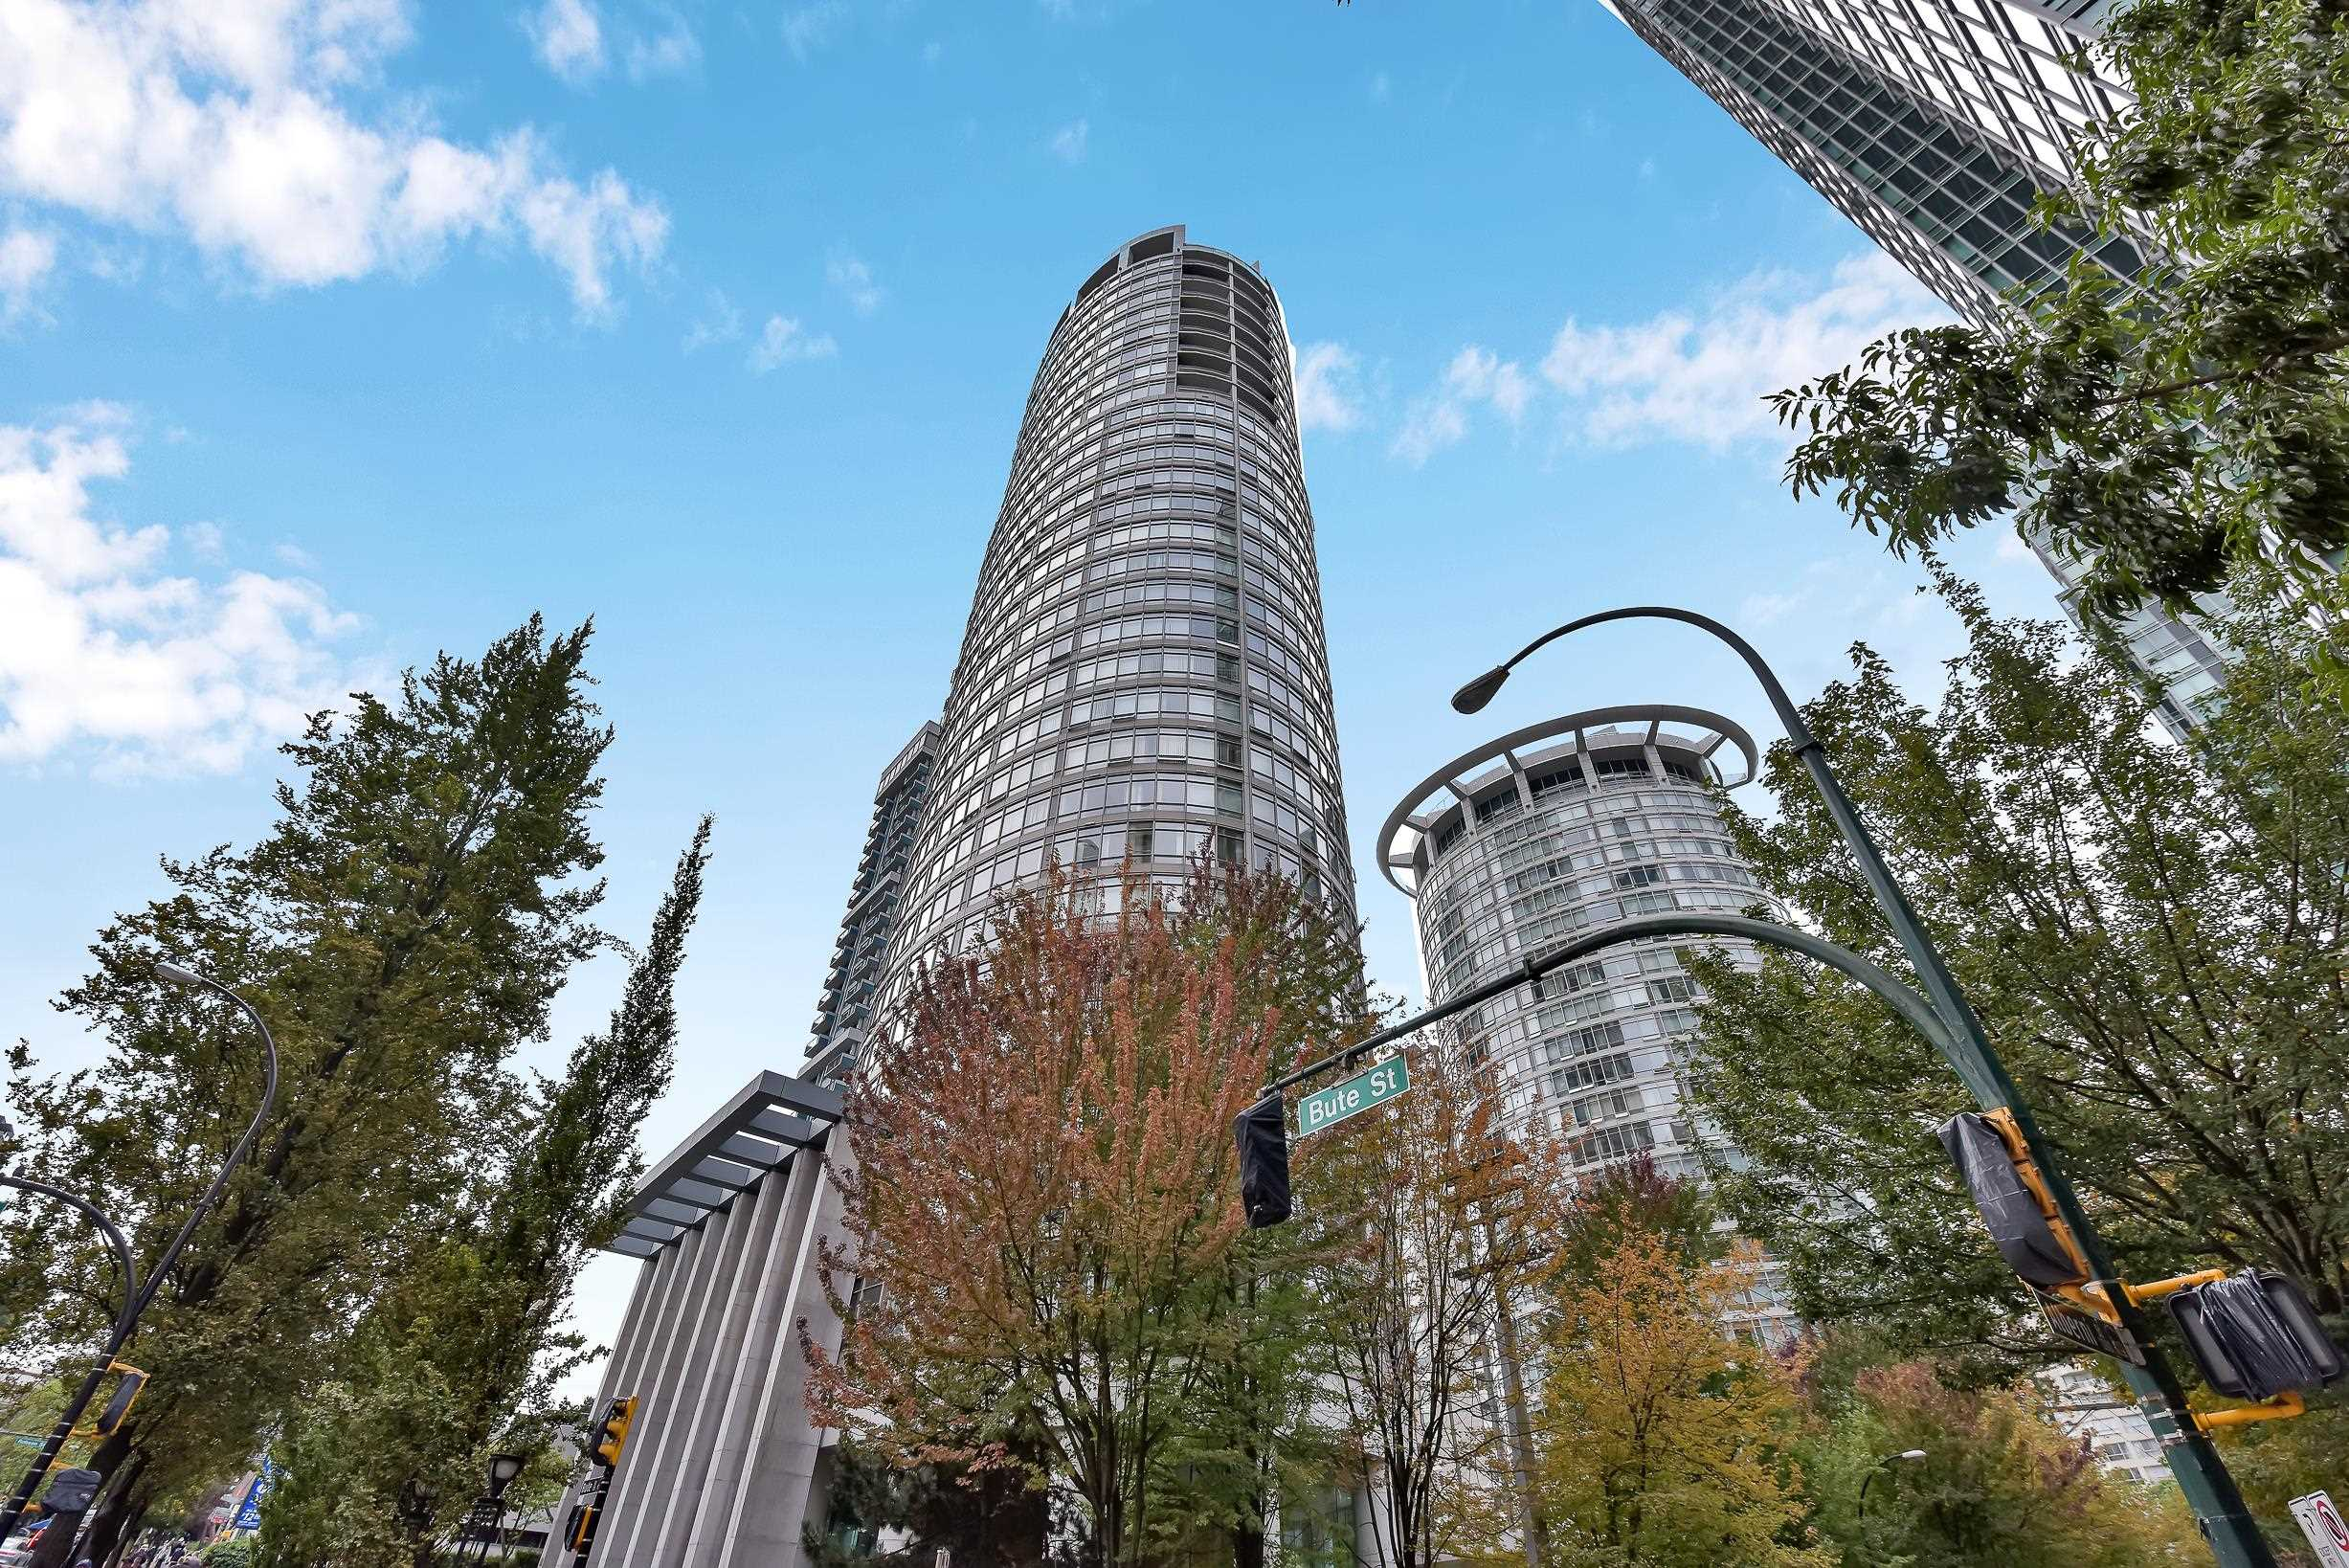 1806 1200 ALBERNI STREET - West End VW Apartment/Condo for sale, 2 Bedrooms (R2619408) - #1